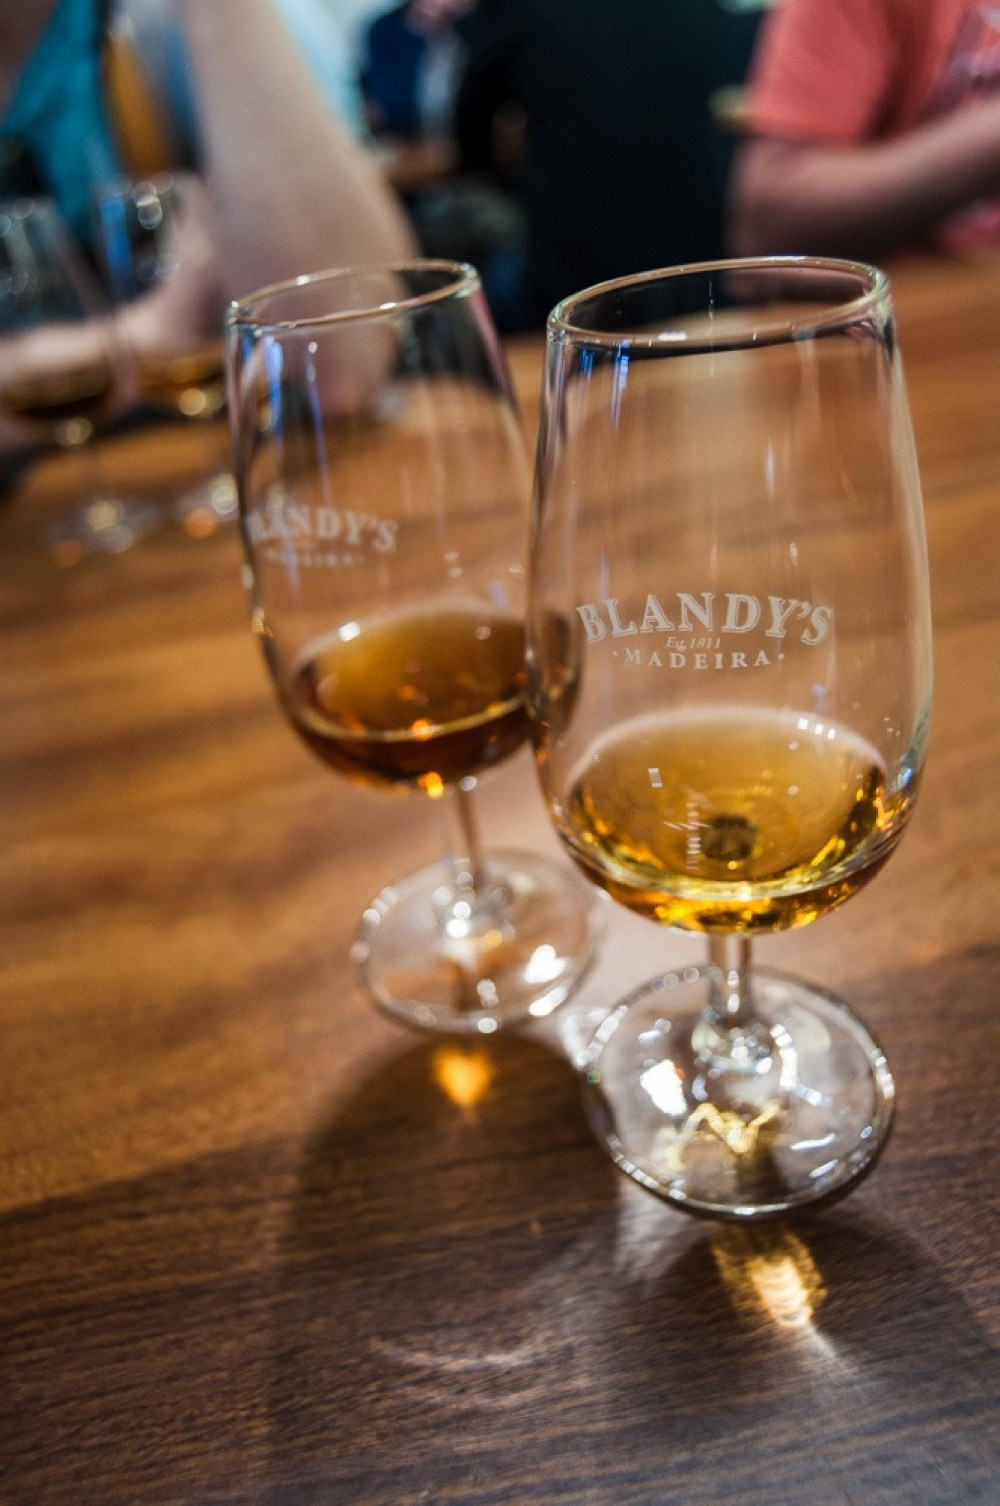 Blandys, Madeira Wine Tours | Food and Drinks to Try in Madeira (Portugal) | Wanderwings